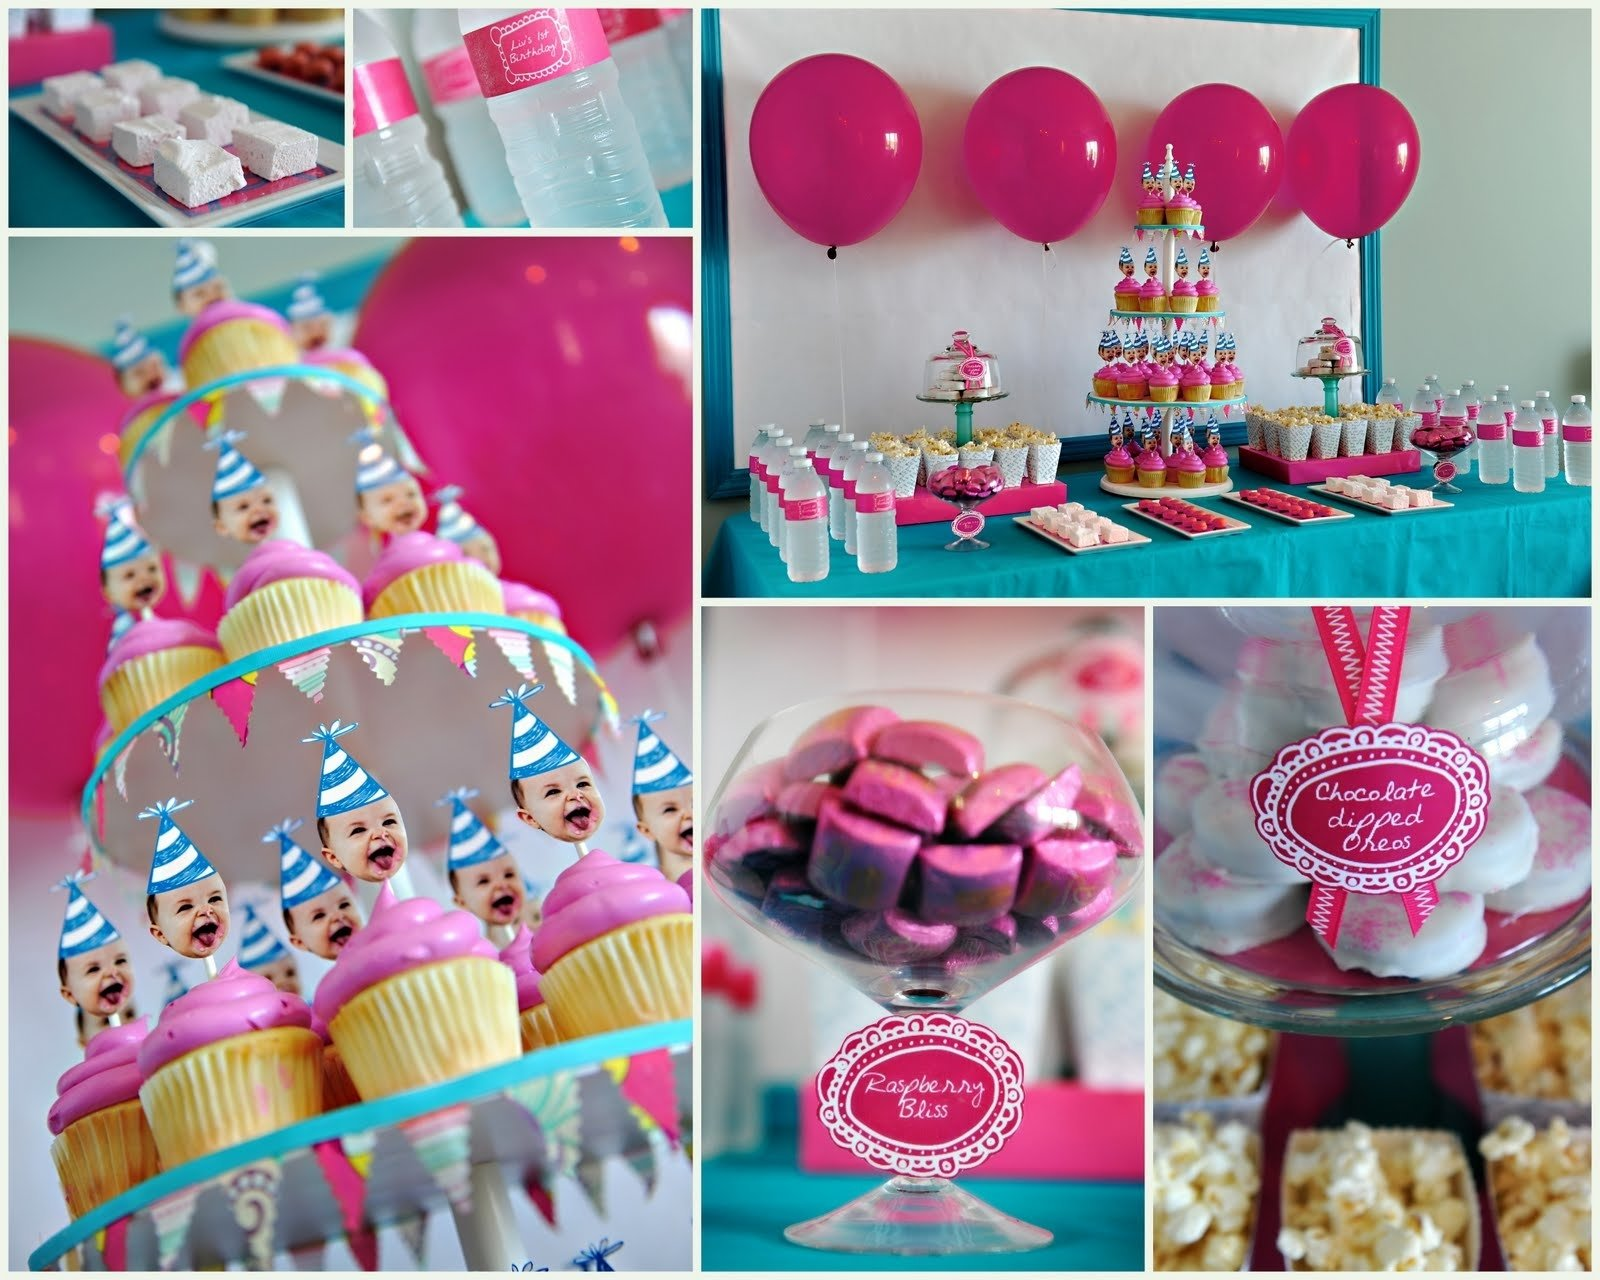 10 Pretty Birthday Party Ideas For 15 Yr Old Girl themes birthday game ideas for a 15 year old birthday party with